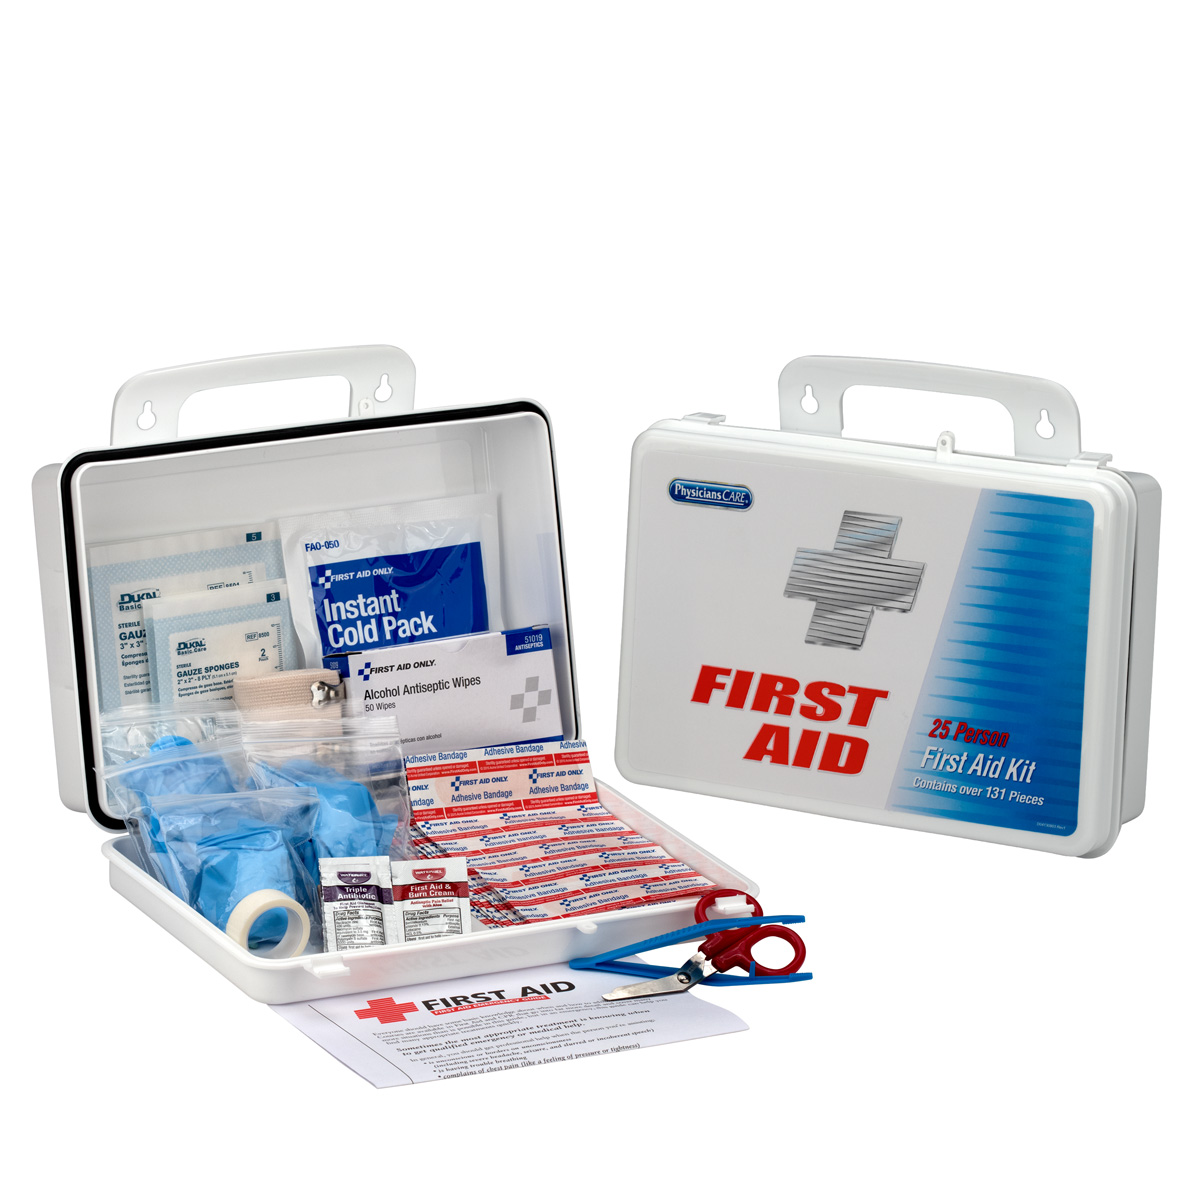 PhysiciansCare by First Aid Only 25 Person First Aid Kit, Plastic Case